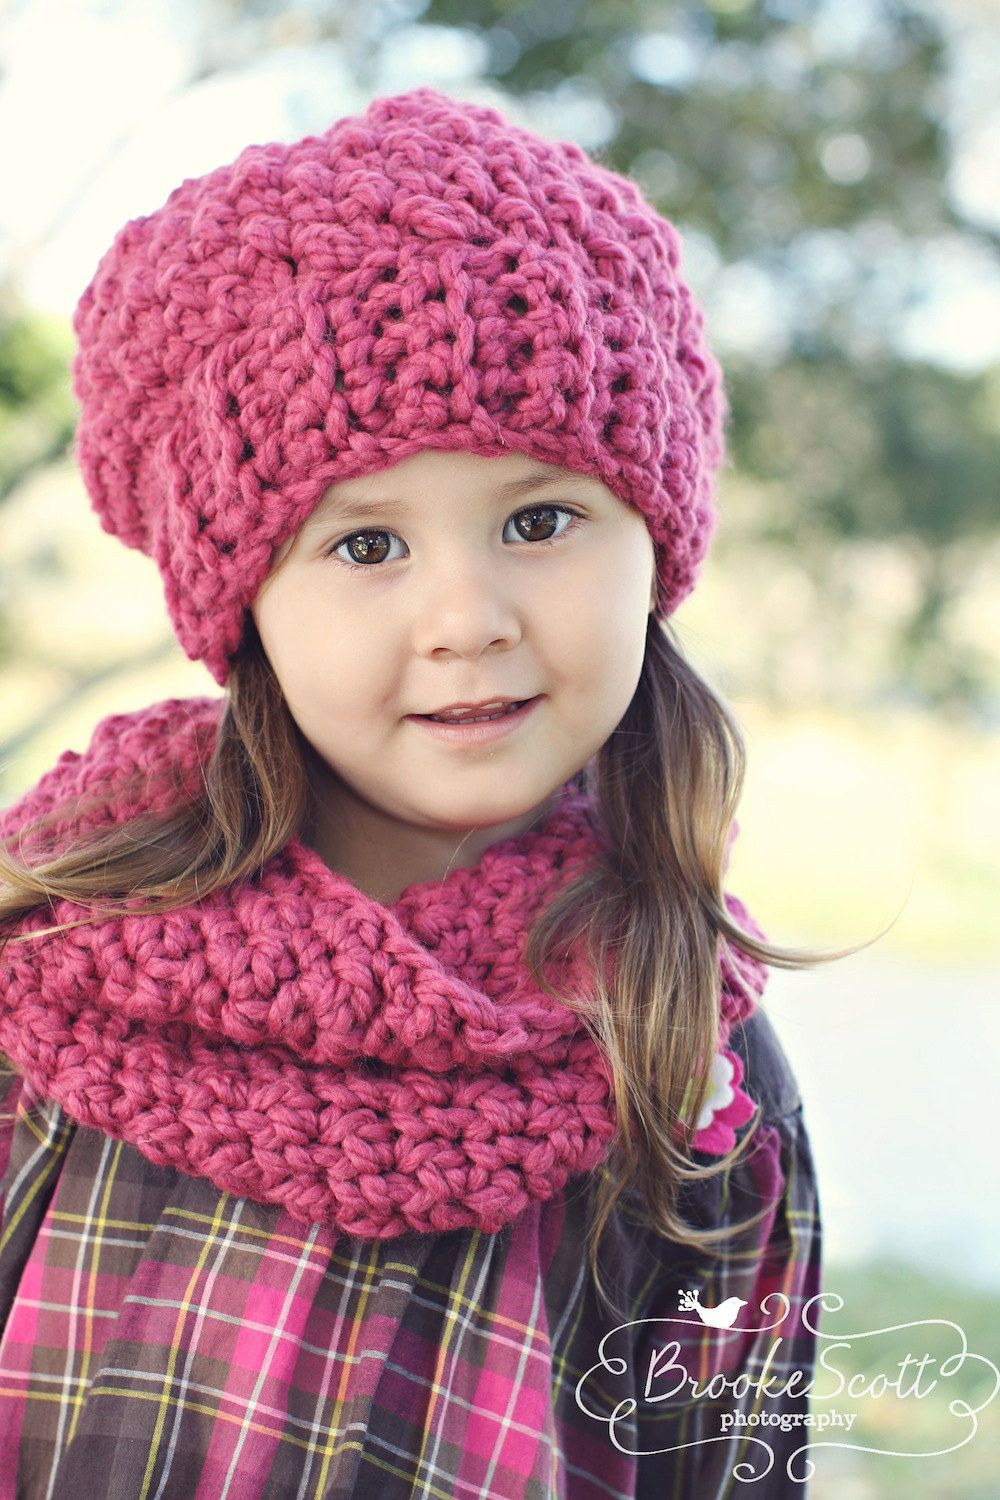 Childrens crochet hat scarf set slouchy hat and infinity scarf childrens crochet hat scarf set slouchy hat and infinity scarf crochet childrens scarf bankloansurffo Gallery